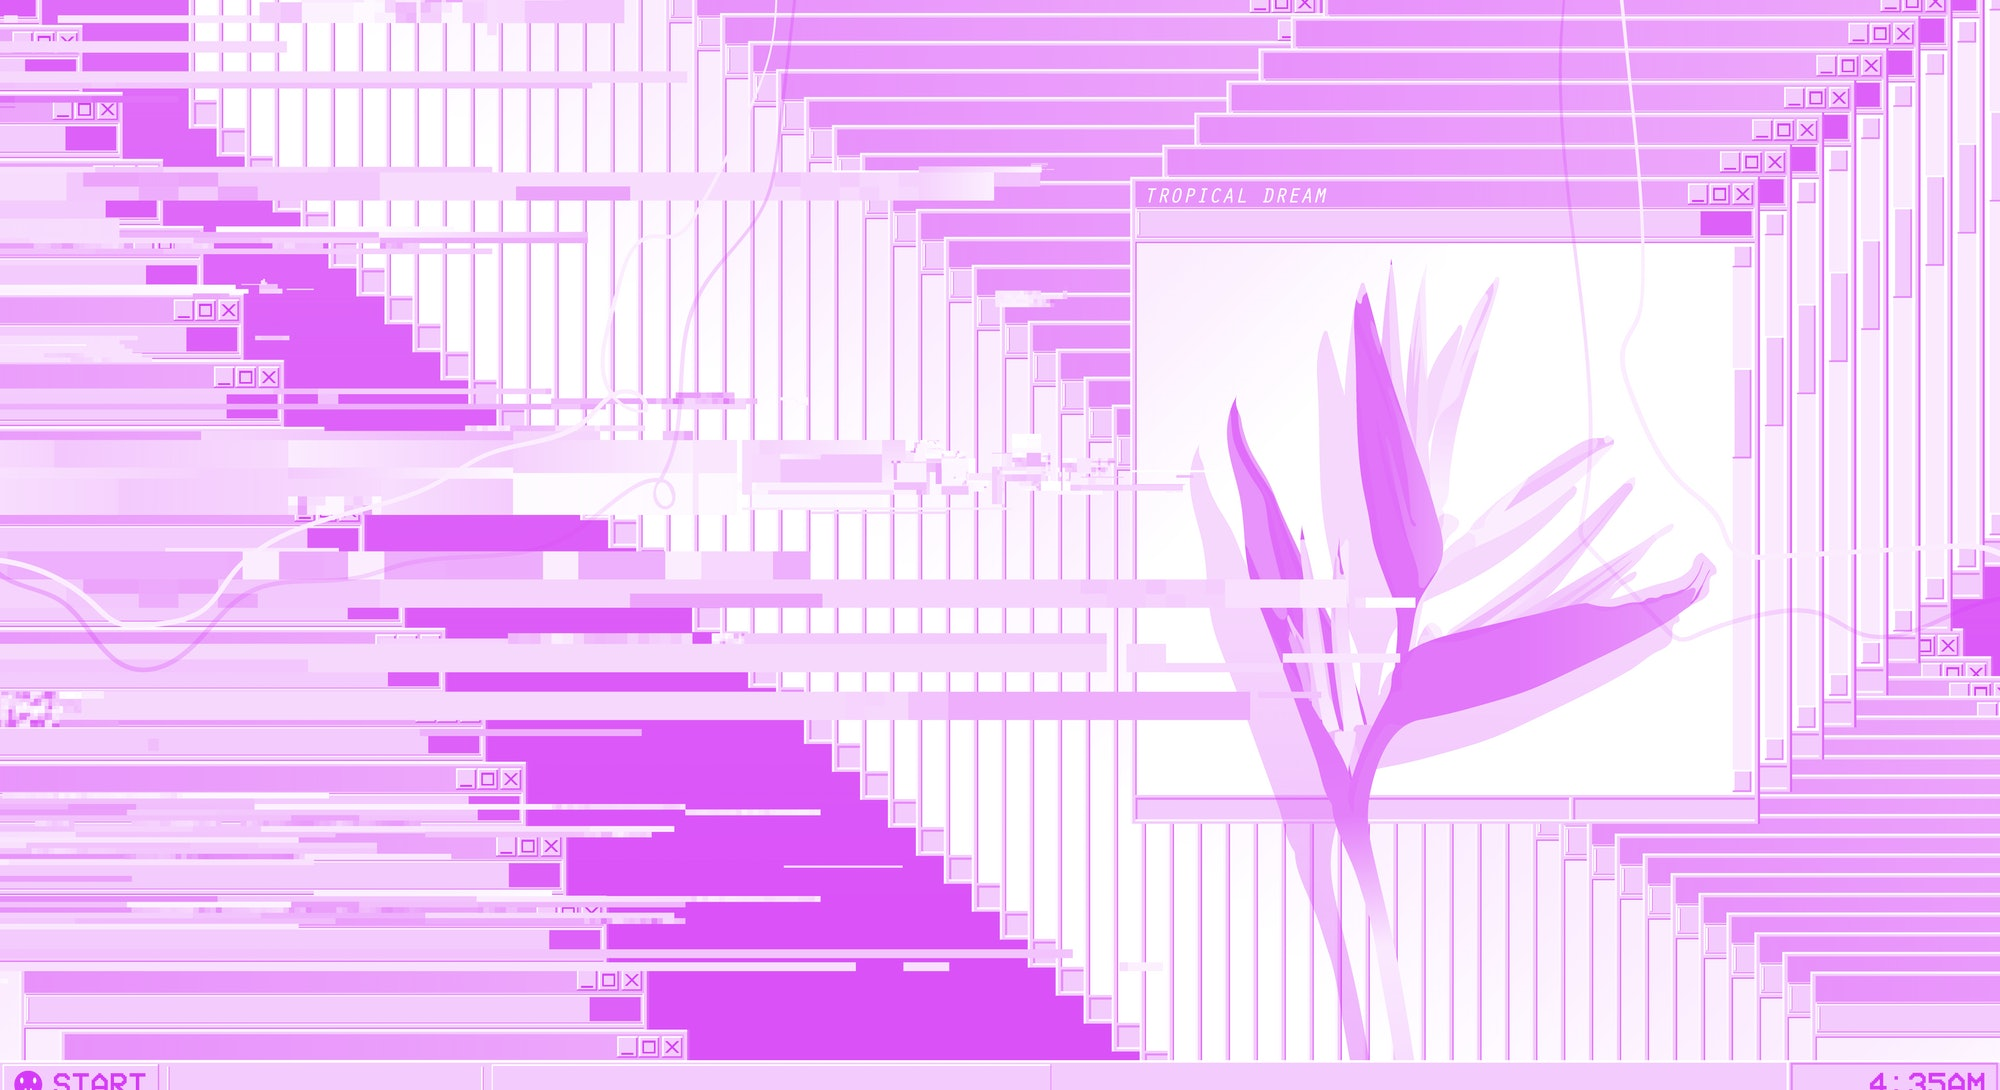 Operation system desktop display glitch and error with tropical bird of paradise flower, vaporwave n...